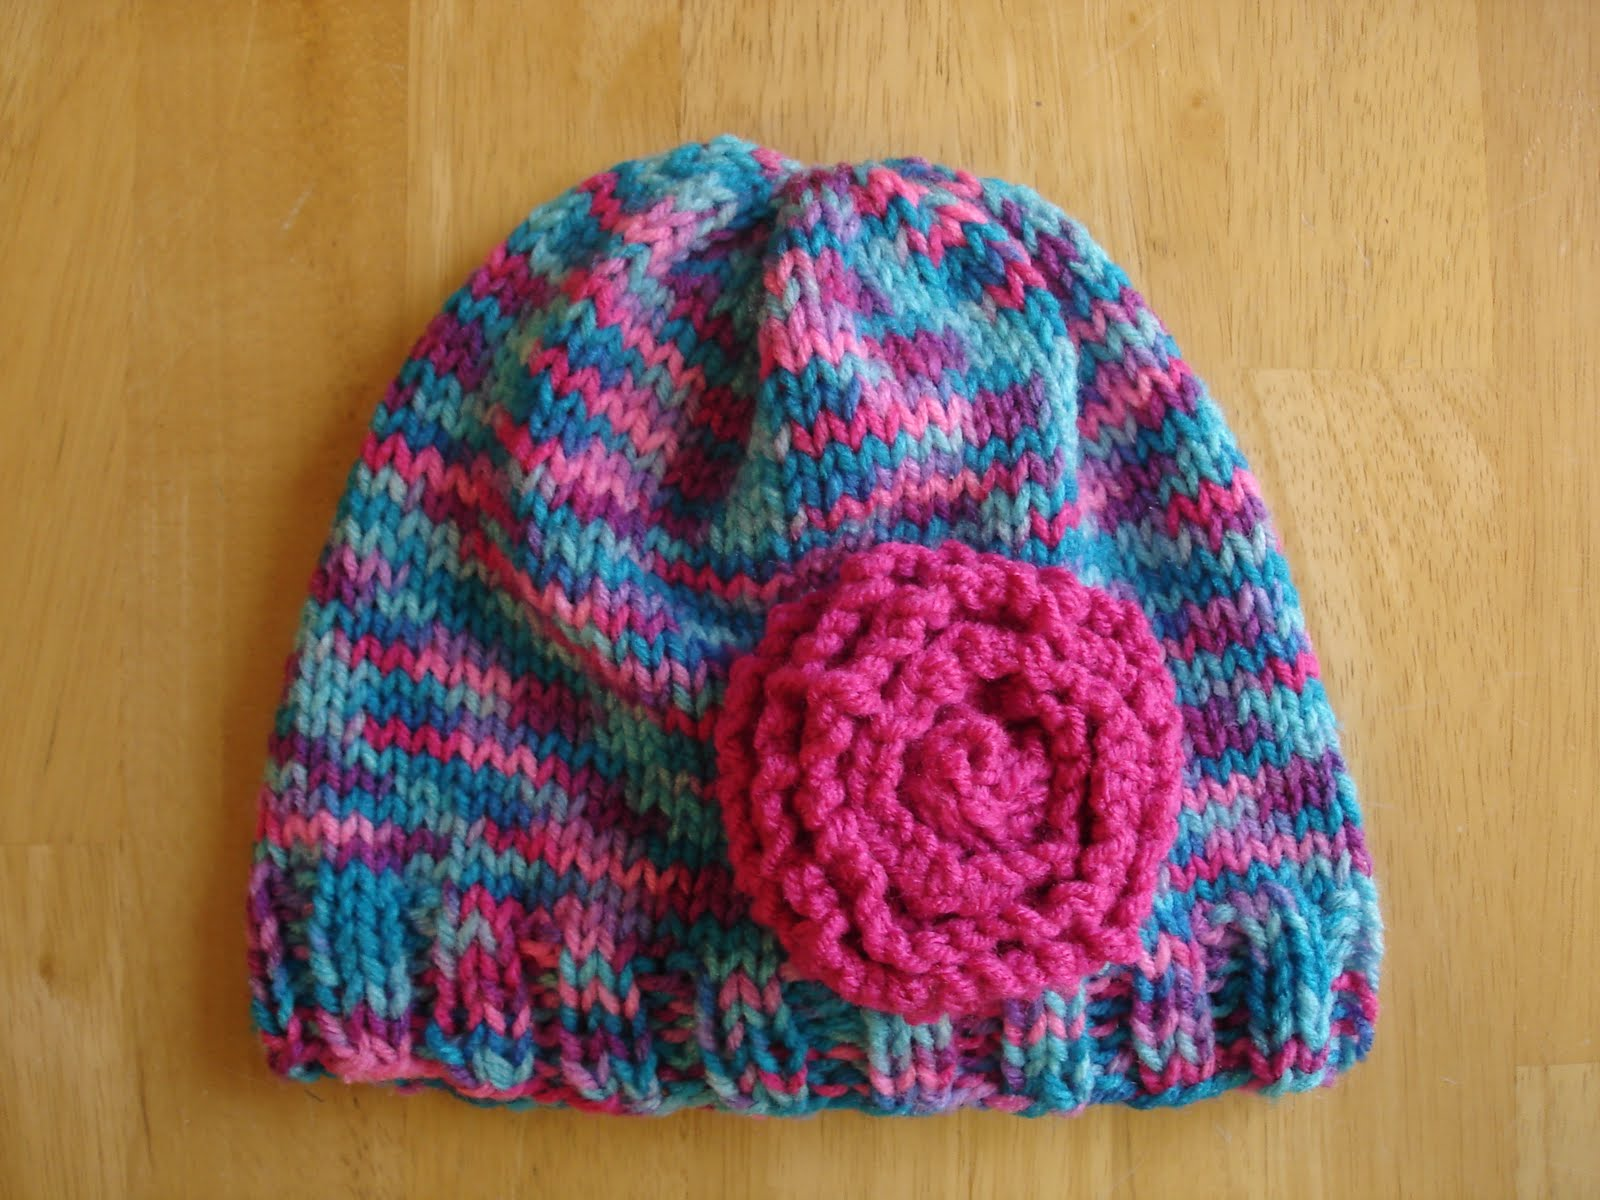 Free Knitting Patterns Hats For Children : Fiber Flux: Free Knitting Pattern...Baby Doll Hats!